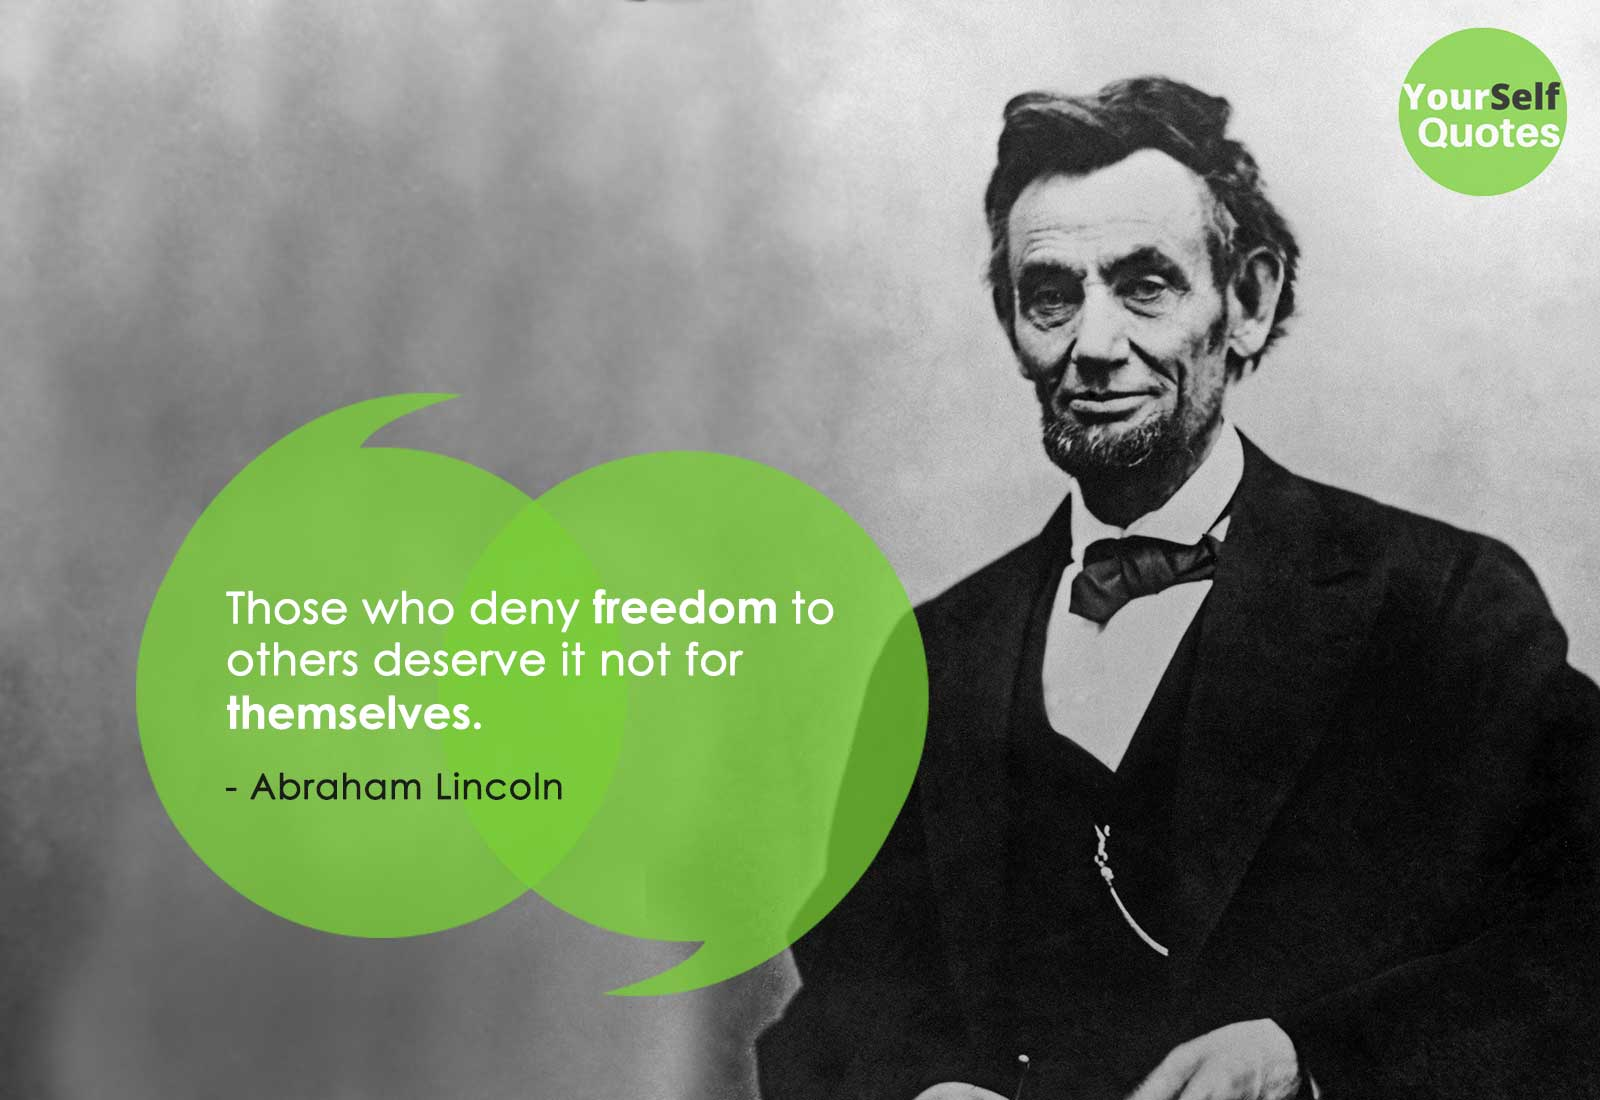 abraham lincoln quotes about freedom.jpg